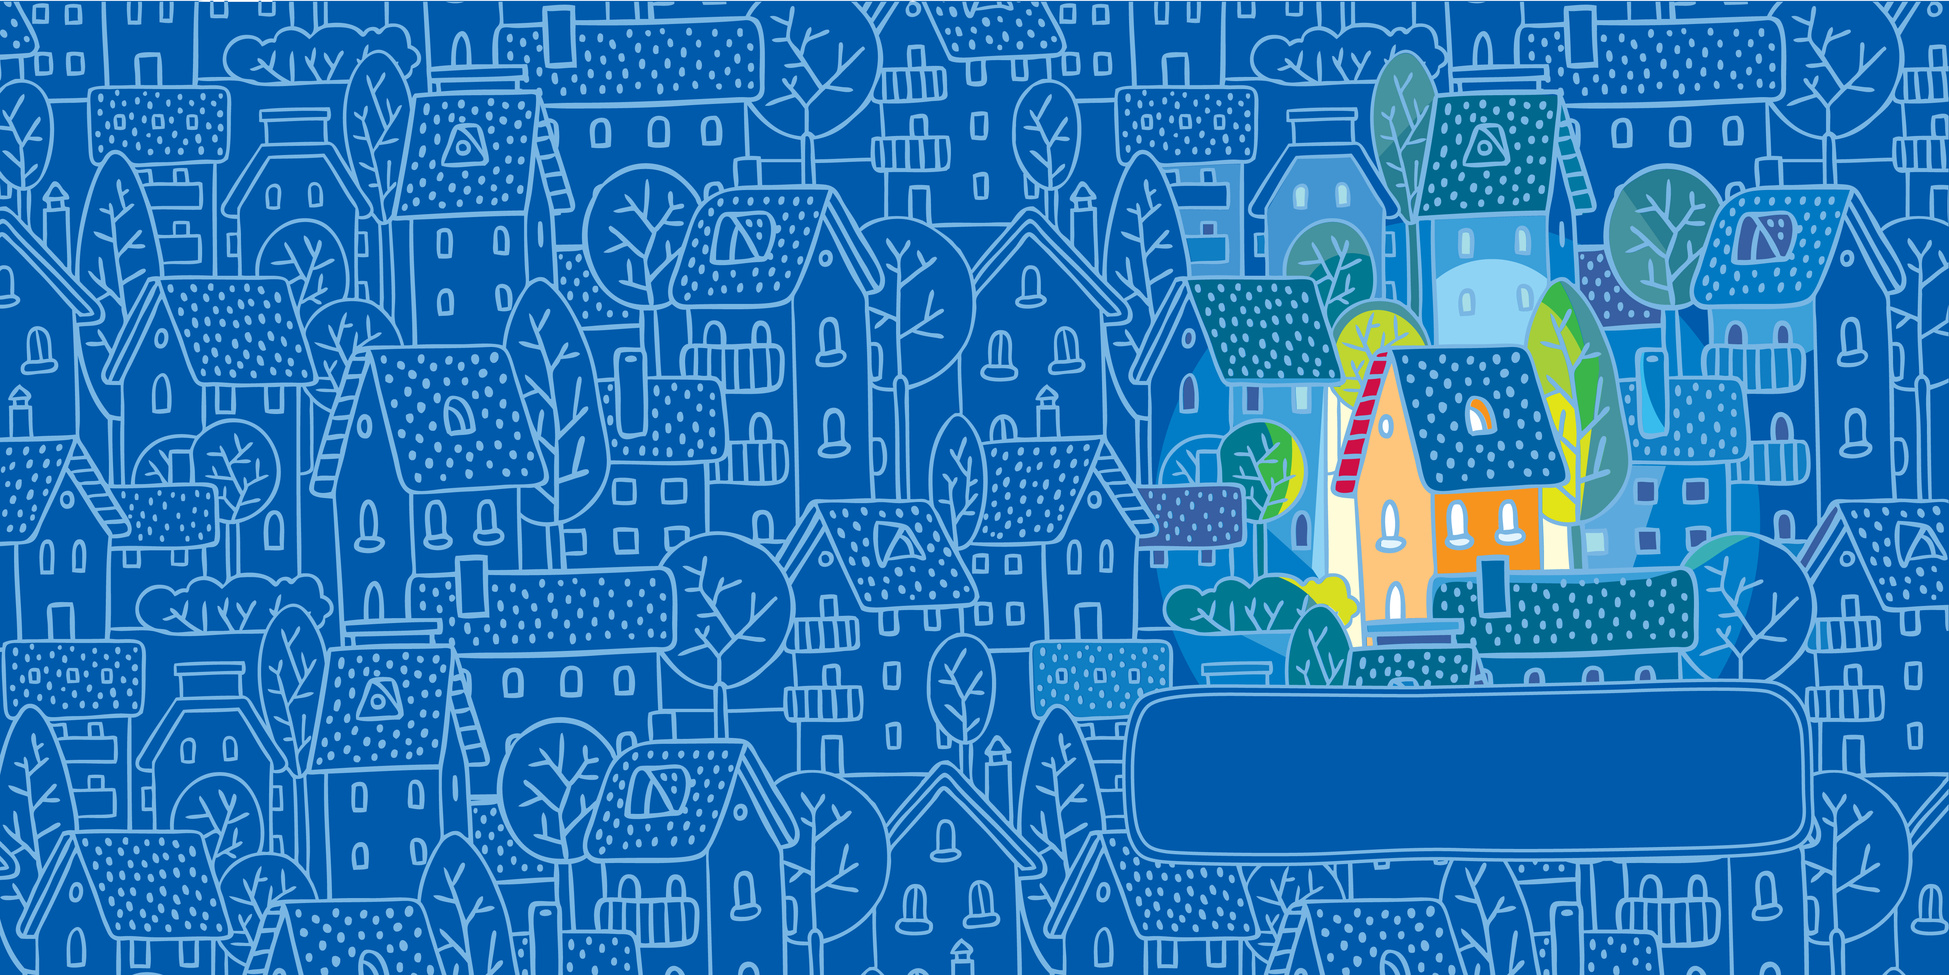 Double sided (bilateral) square greeting card with pattern of with nice color house (sweet home) on monochrome blue pattern background with houses, trees and roofs